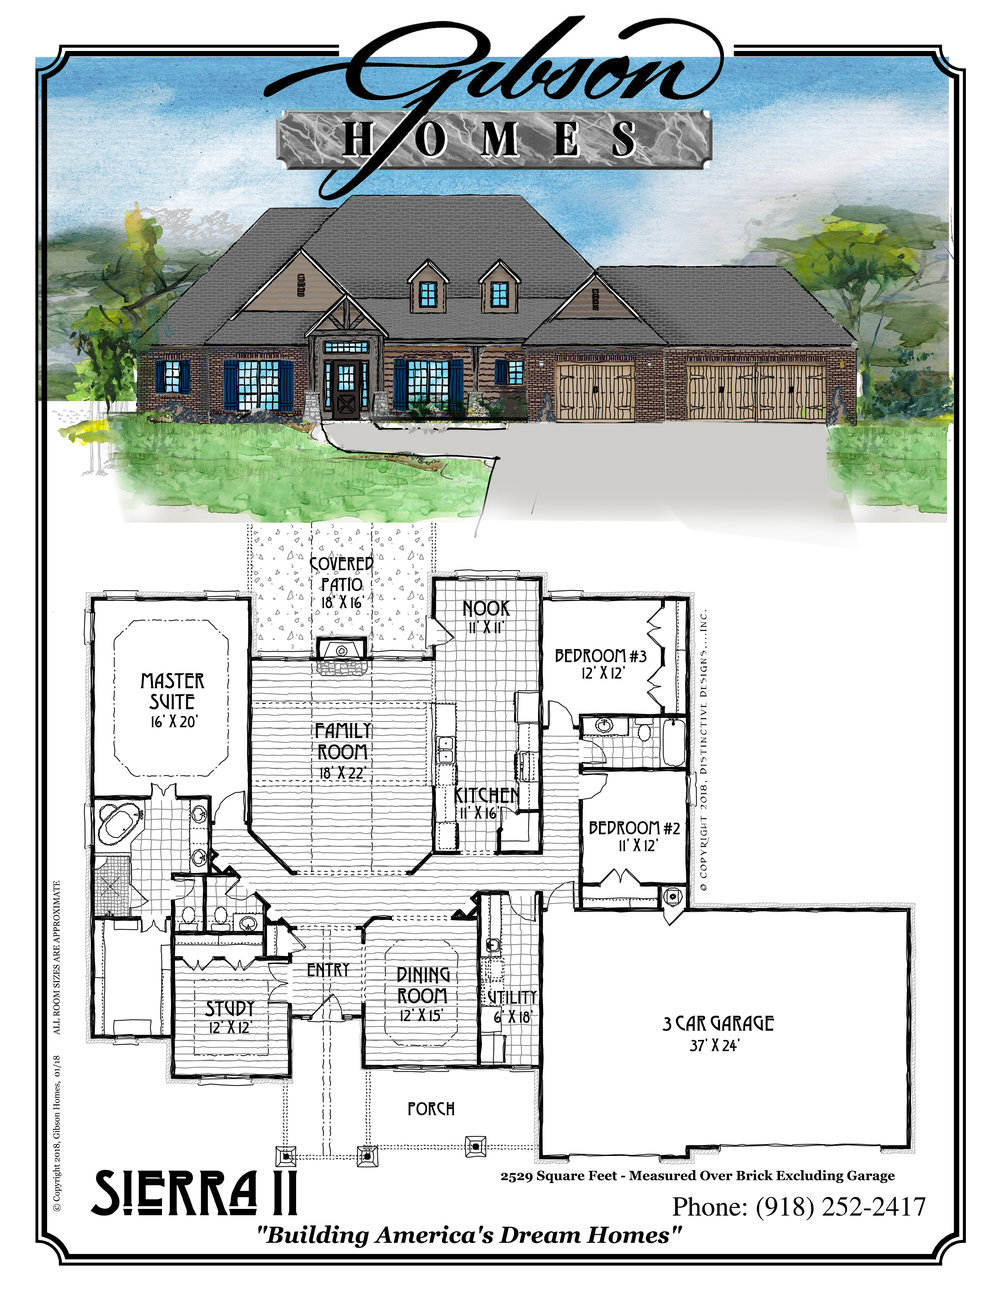 SIERRA II - 2529 Sq. Feet3 bedrooms2.5 bathsStudyFormal Dining3 car garageBase Price $265,000